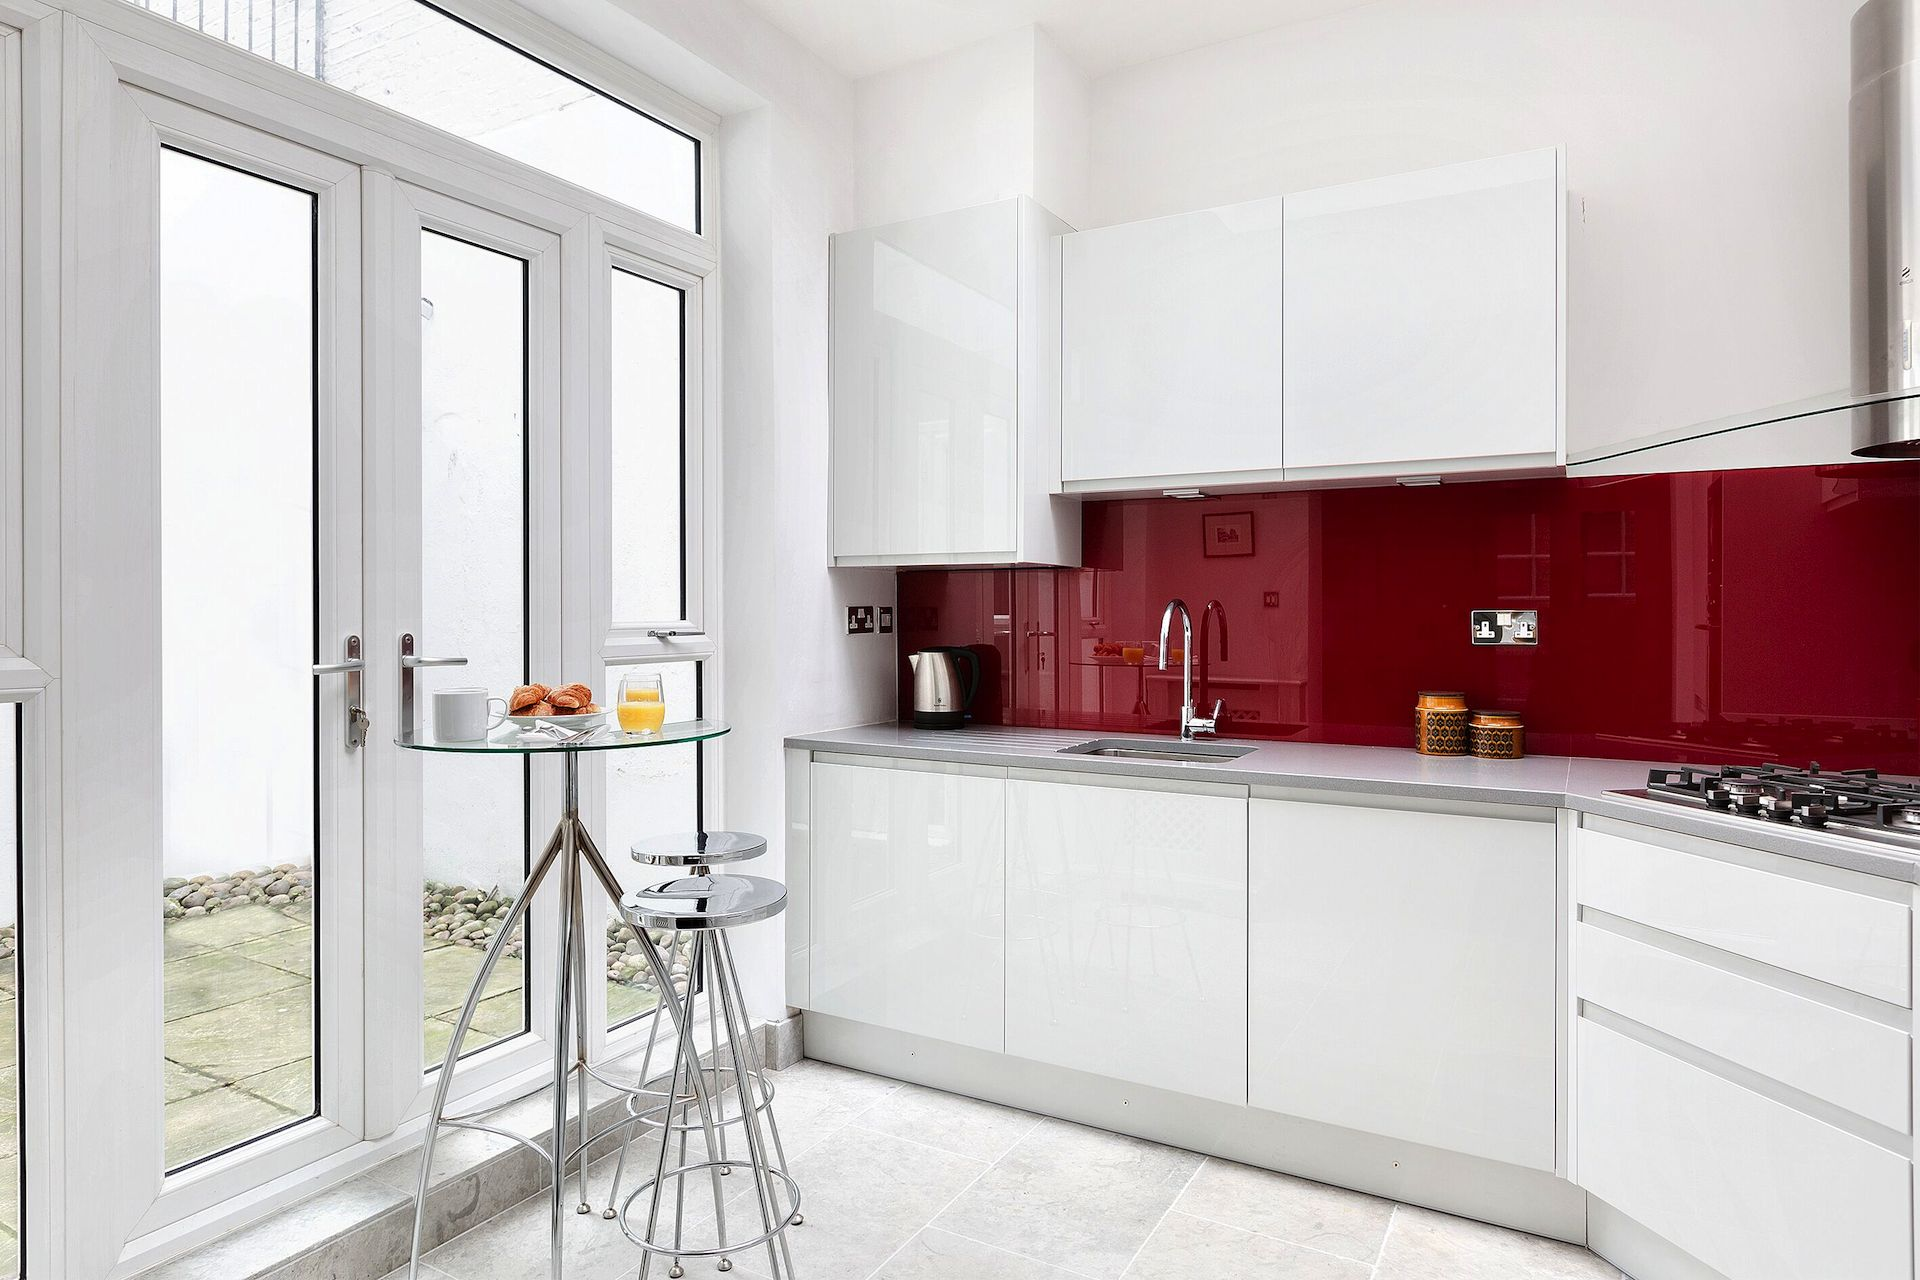 Modern kitchen in the Coleherne vacation rental offered by London Perfect